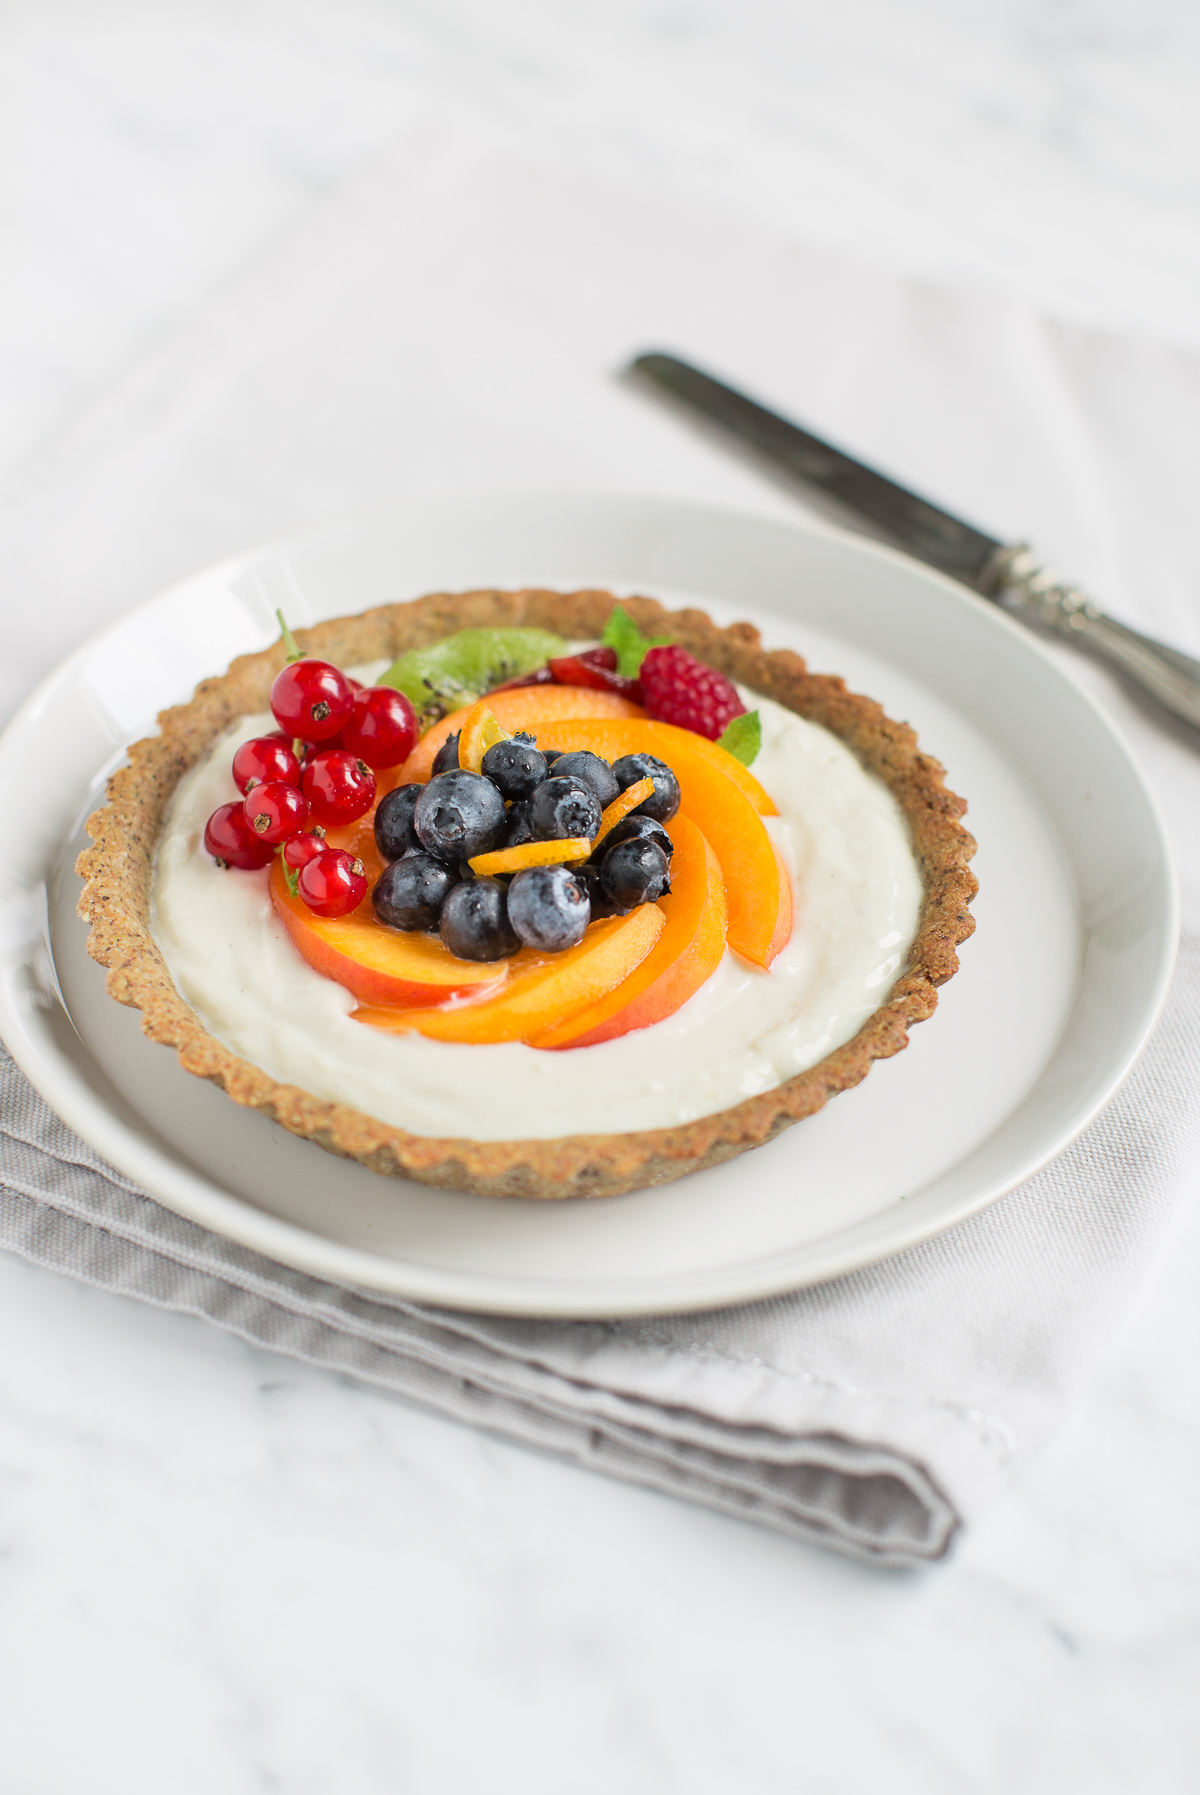 glutenfree vegan fresh fruit yogurt tart recipe - ricetta crostata allo yogurt frutta fresca vegan senza glutine